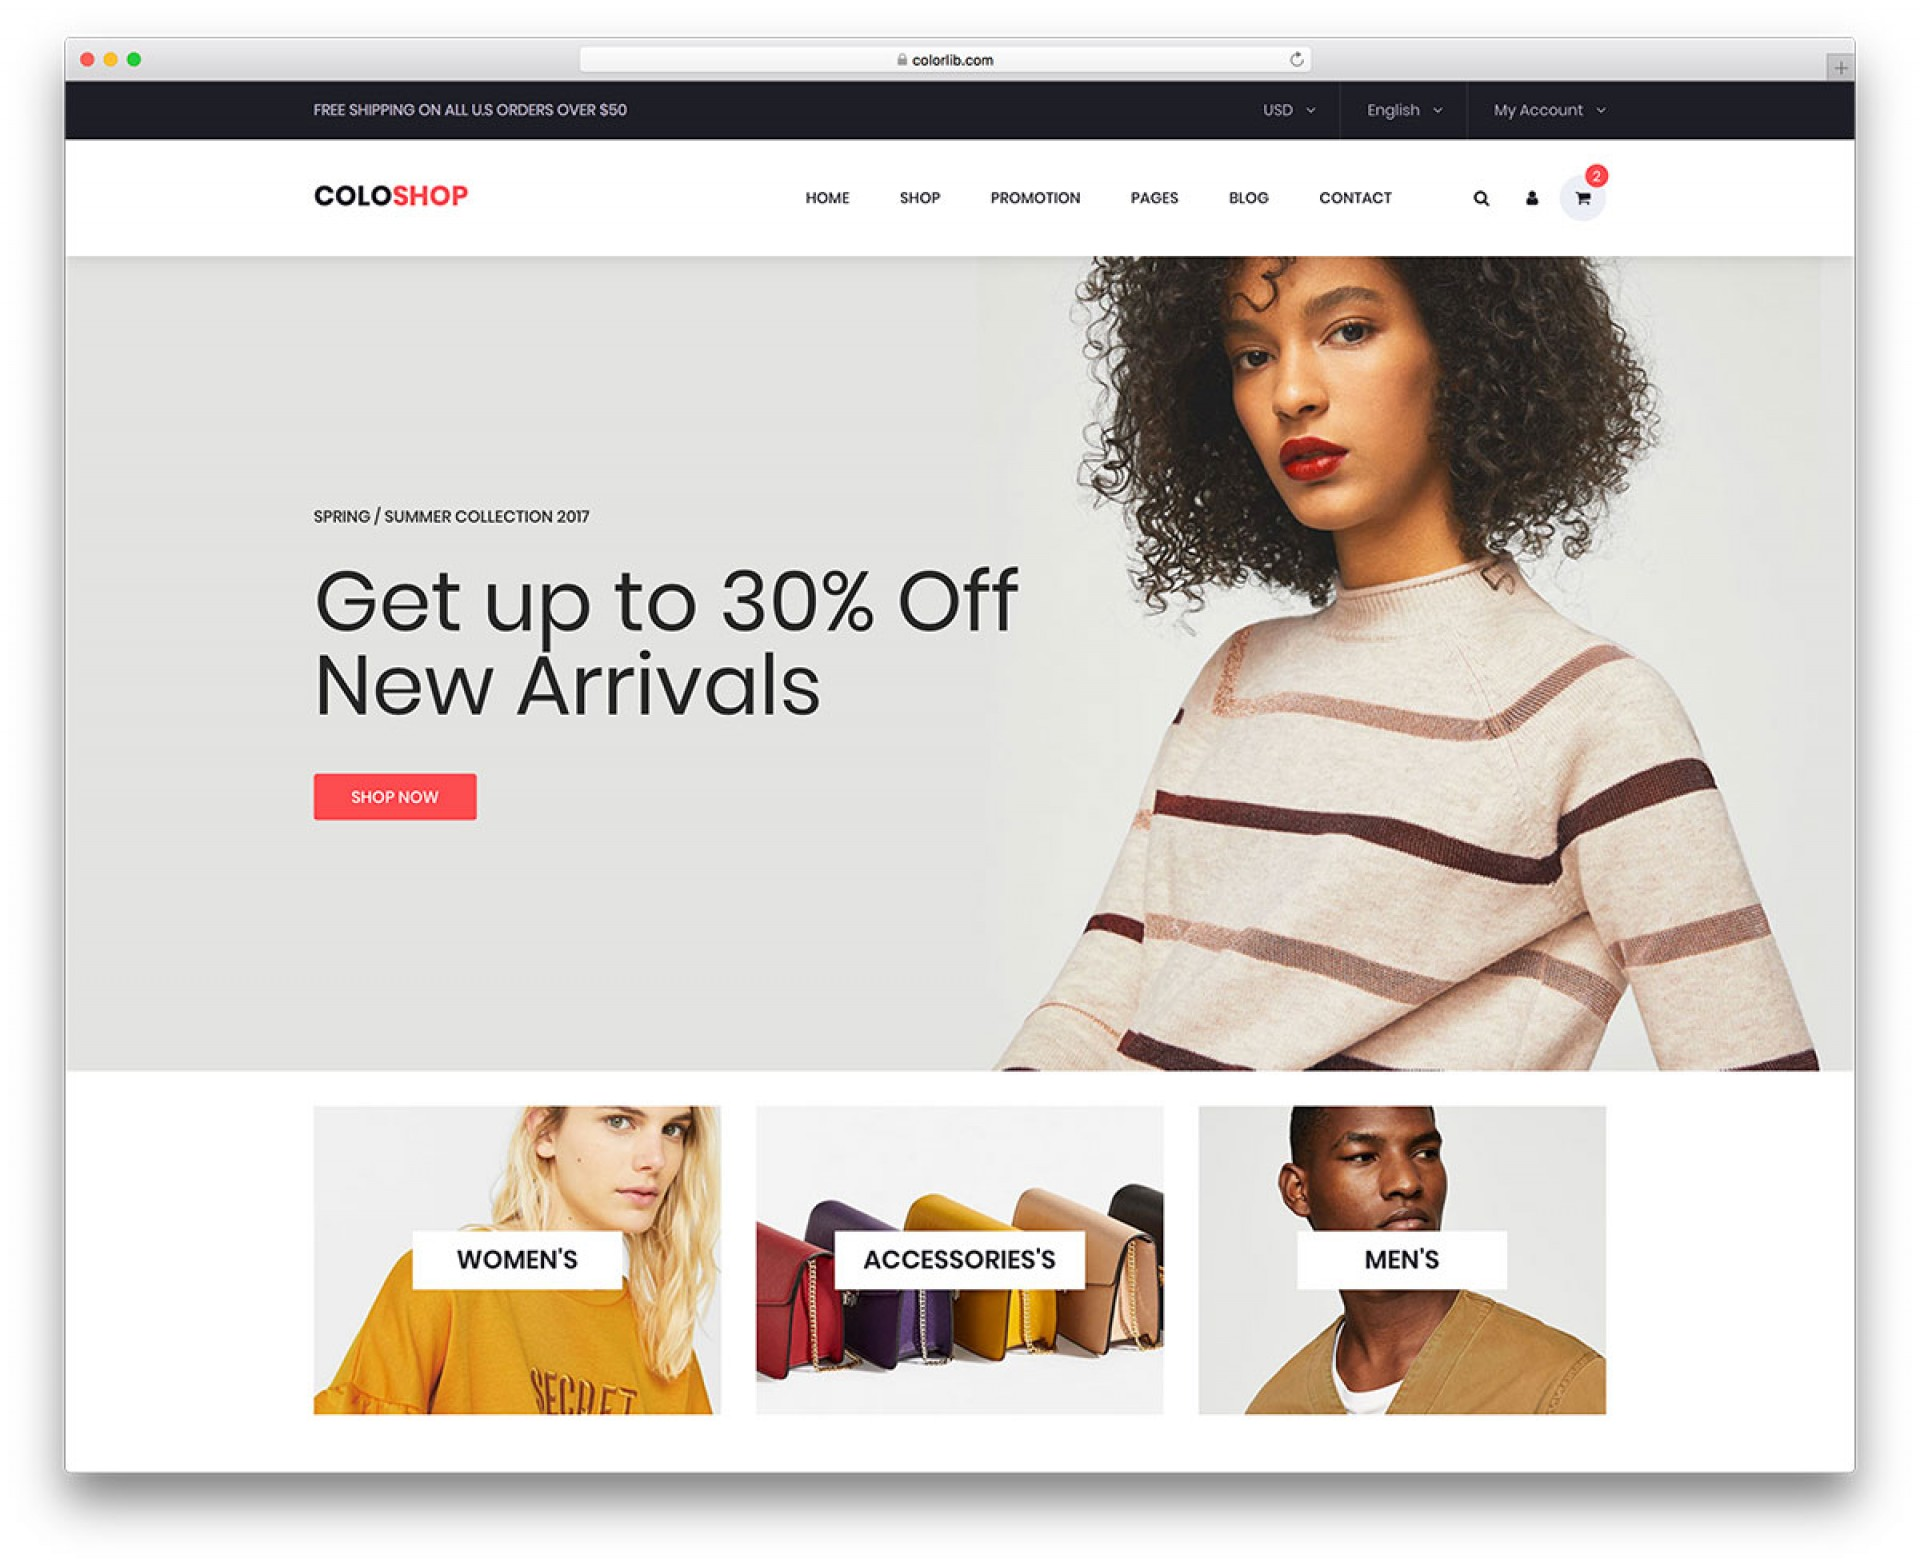 002 Impressive Free E Commerce Website Template Example  Ecommerce Html Cs Bootstrap Php1920